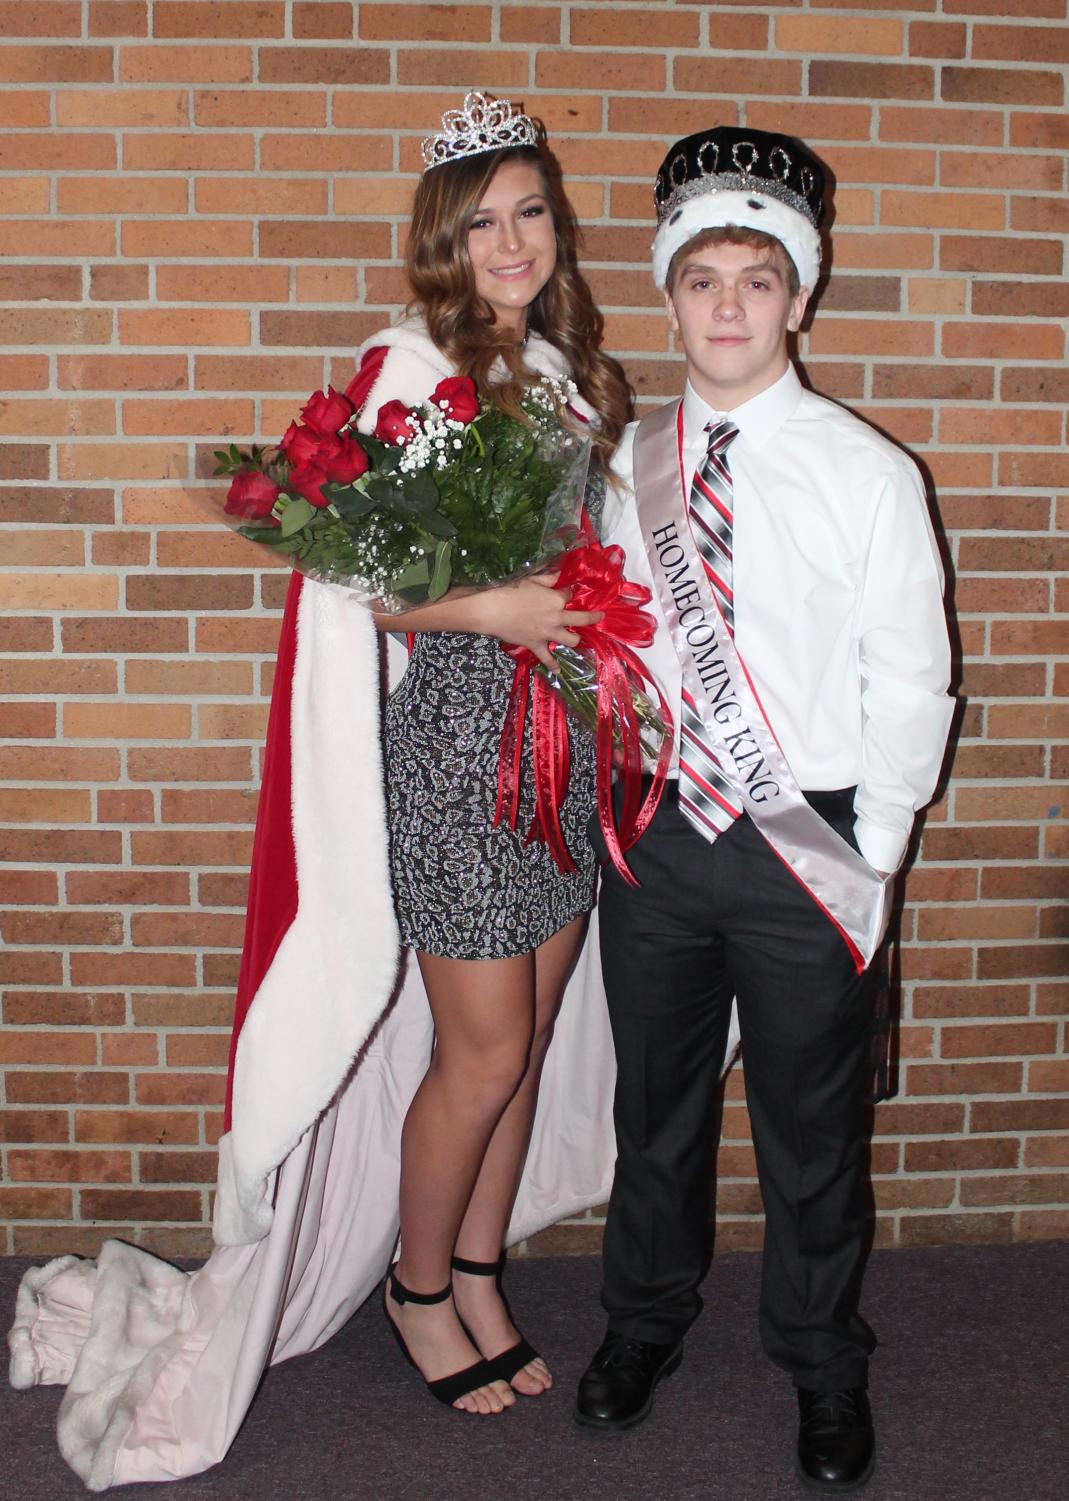 Basketball homecoming queen Hannah Imel and king Gabe Bennett